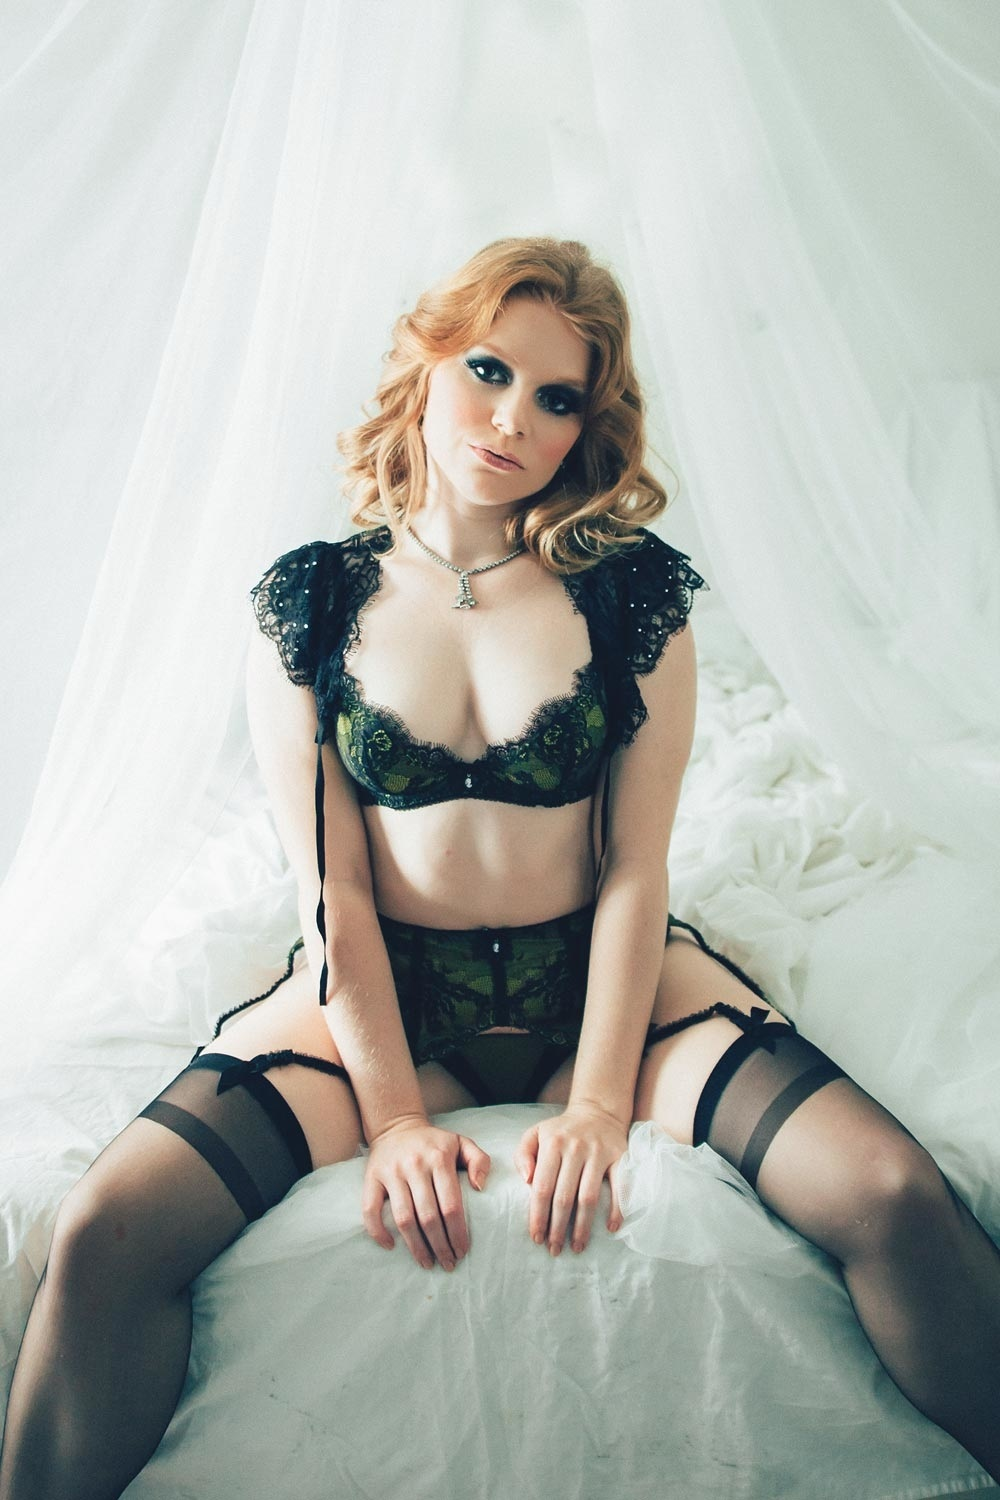 Beautiful Boudoir Photography, Vancouver's best Boudoir Photographer, Beautiful woman in lingerie on bed,